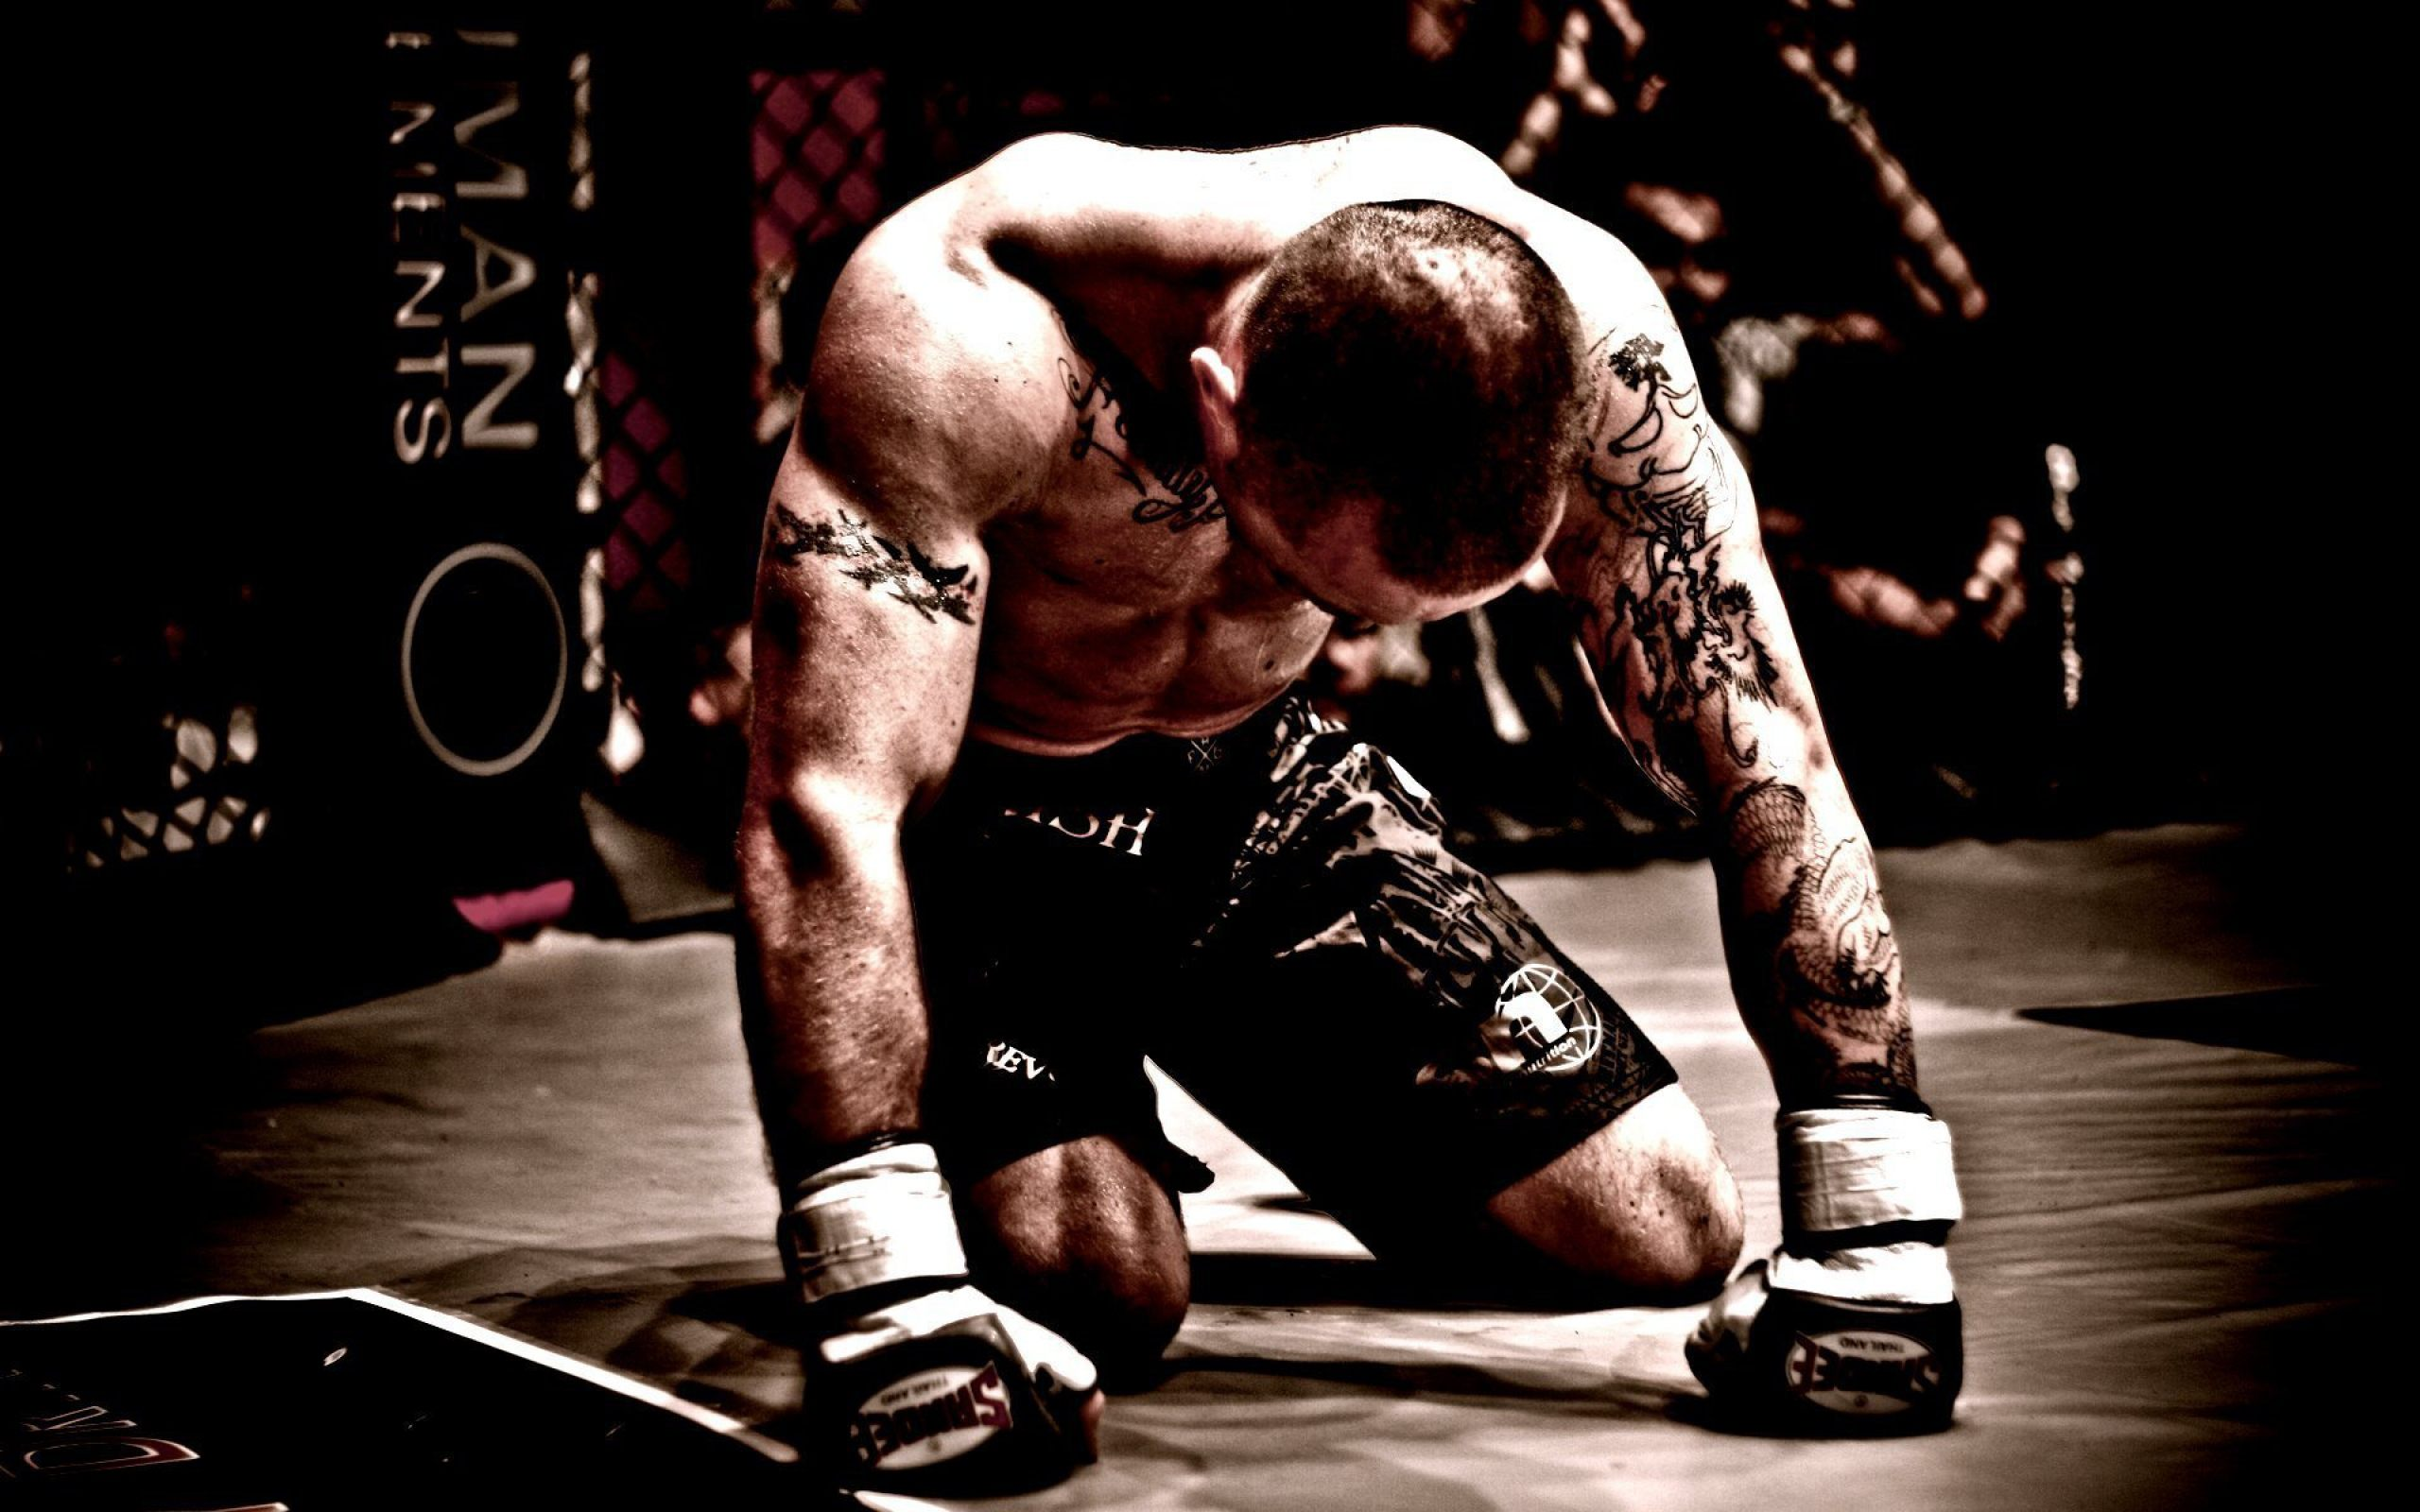 Mma Fighter Boxing Wallpaper